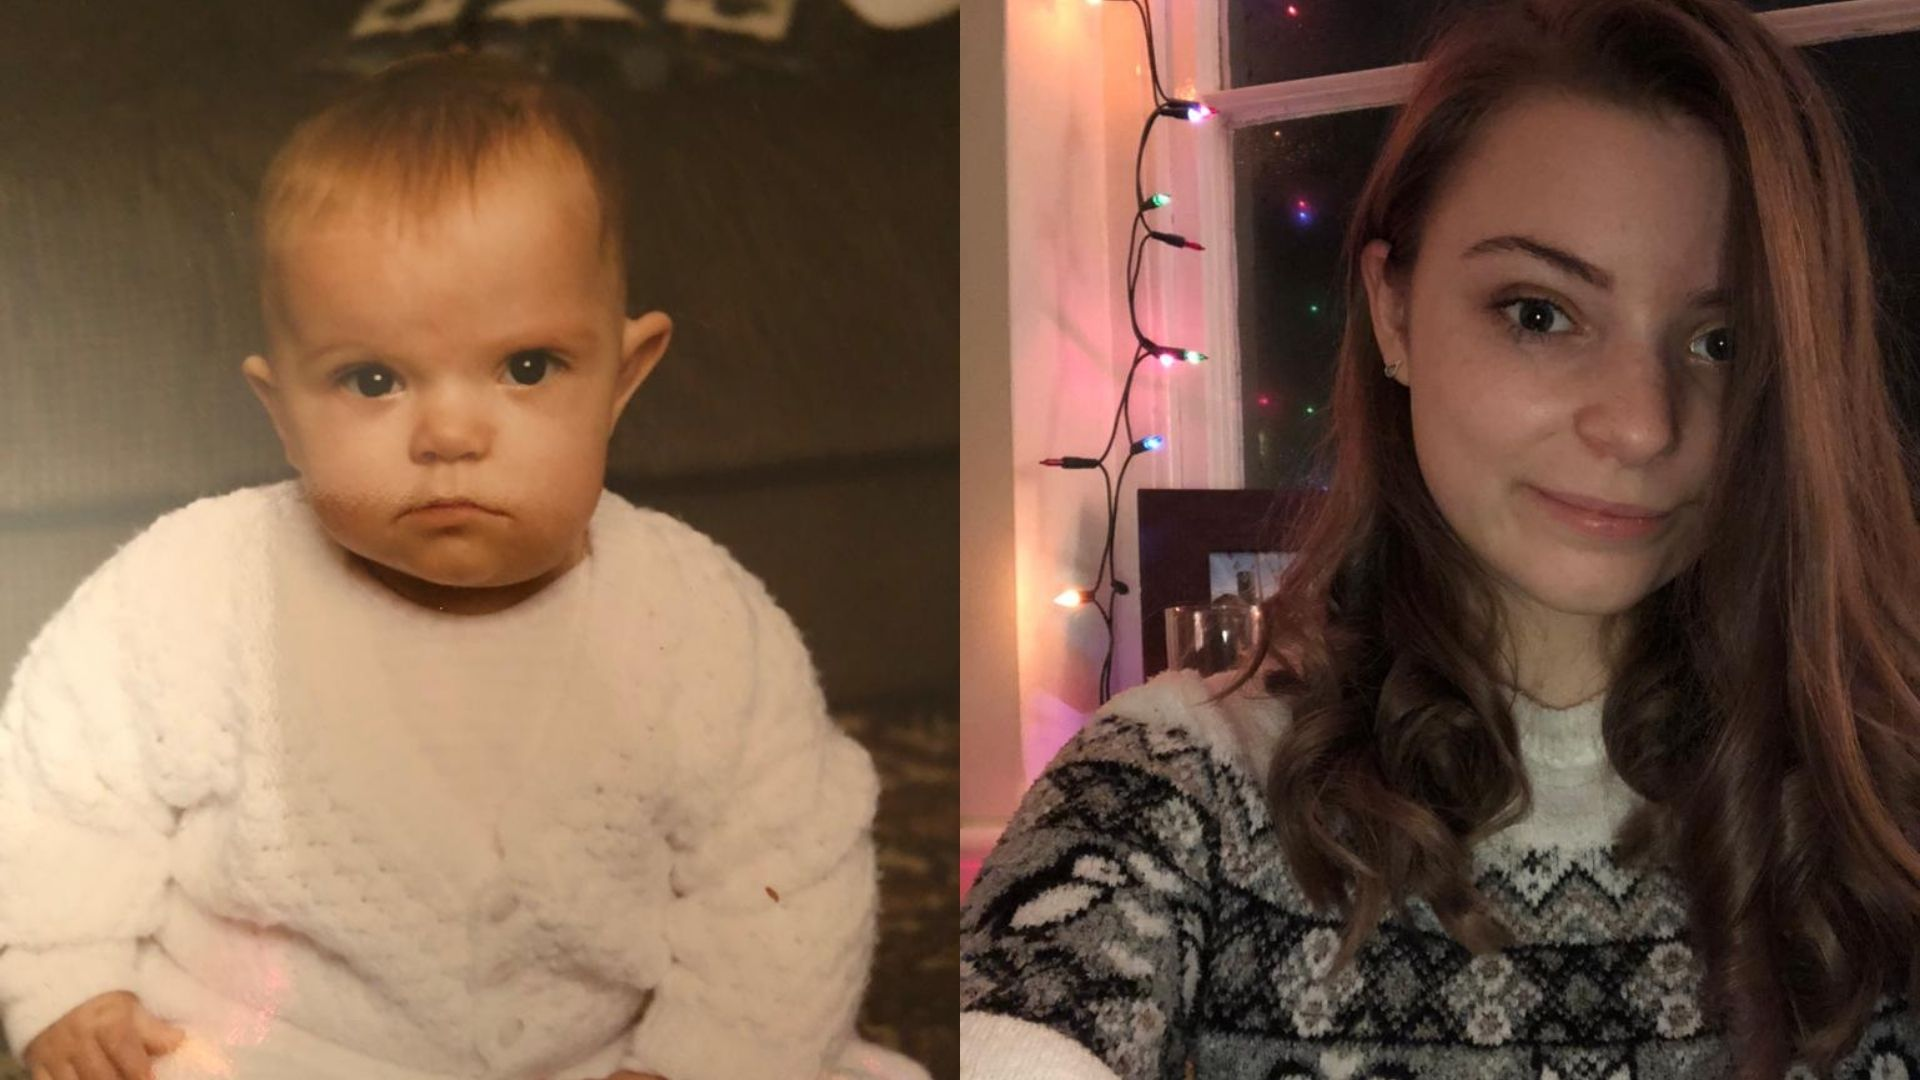 Left: A baby with blue eyes and short blond hair wearing a white knitted jumper and sitting in front of a brown sofa. Right: A woman, early 20s, shoulder length brown hair, wearing a patterned knit jumper. Her hair is covering the left side of her face partially. Behind her is a photo frame and a string of fairy lights.